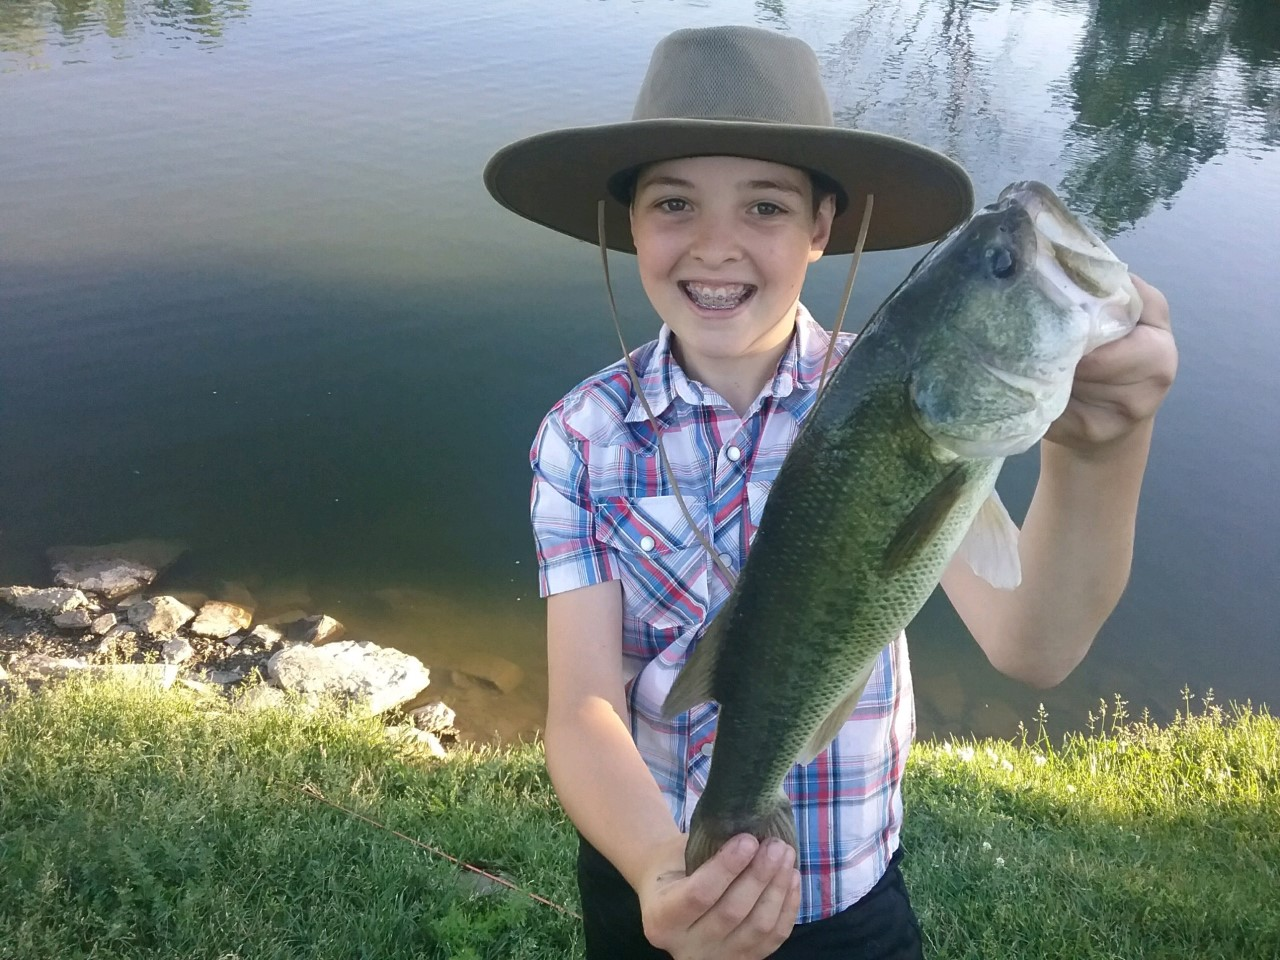 Joseph Happy shows off his fish caught in Simply Grazin' owner, Mark Faille's pond in Upstate NY